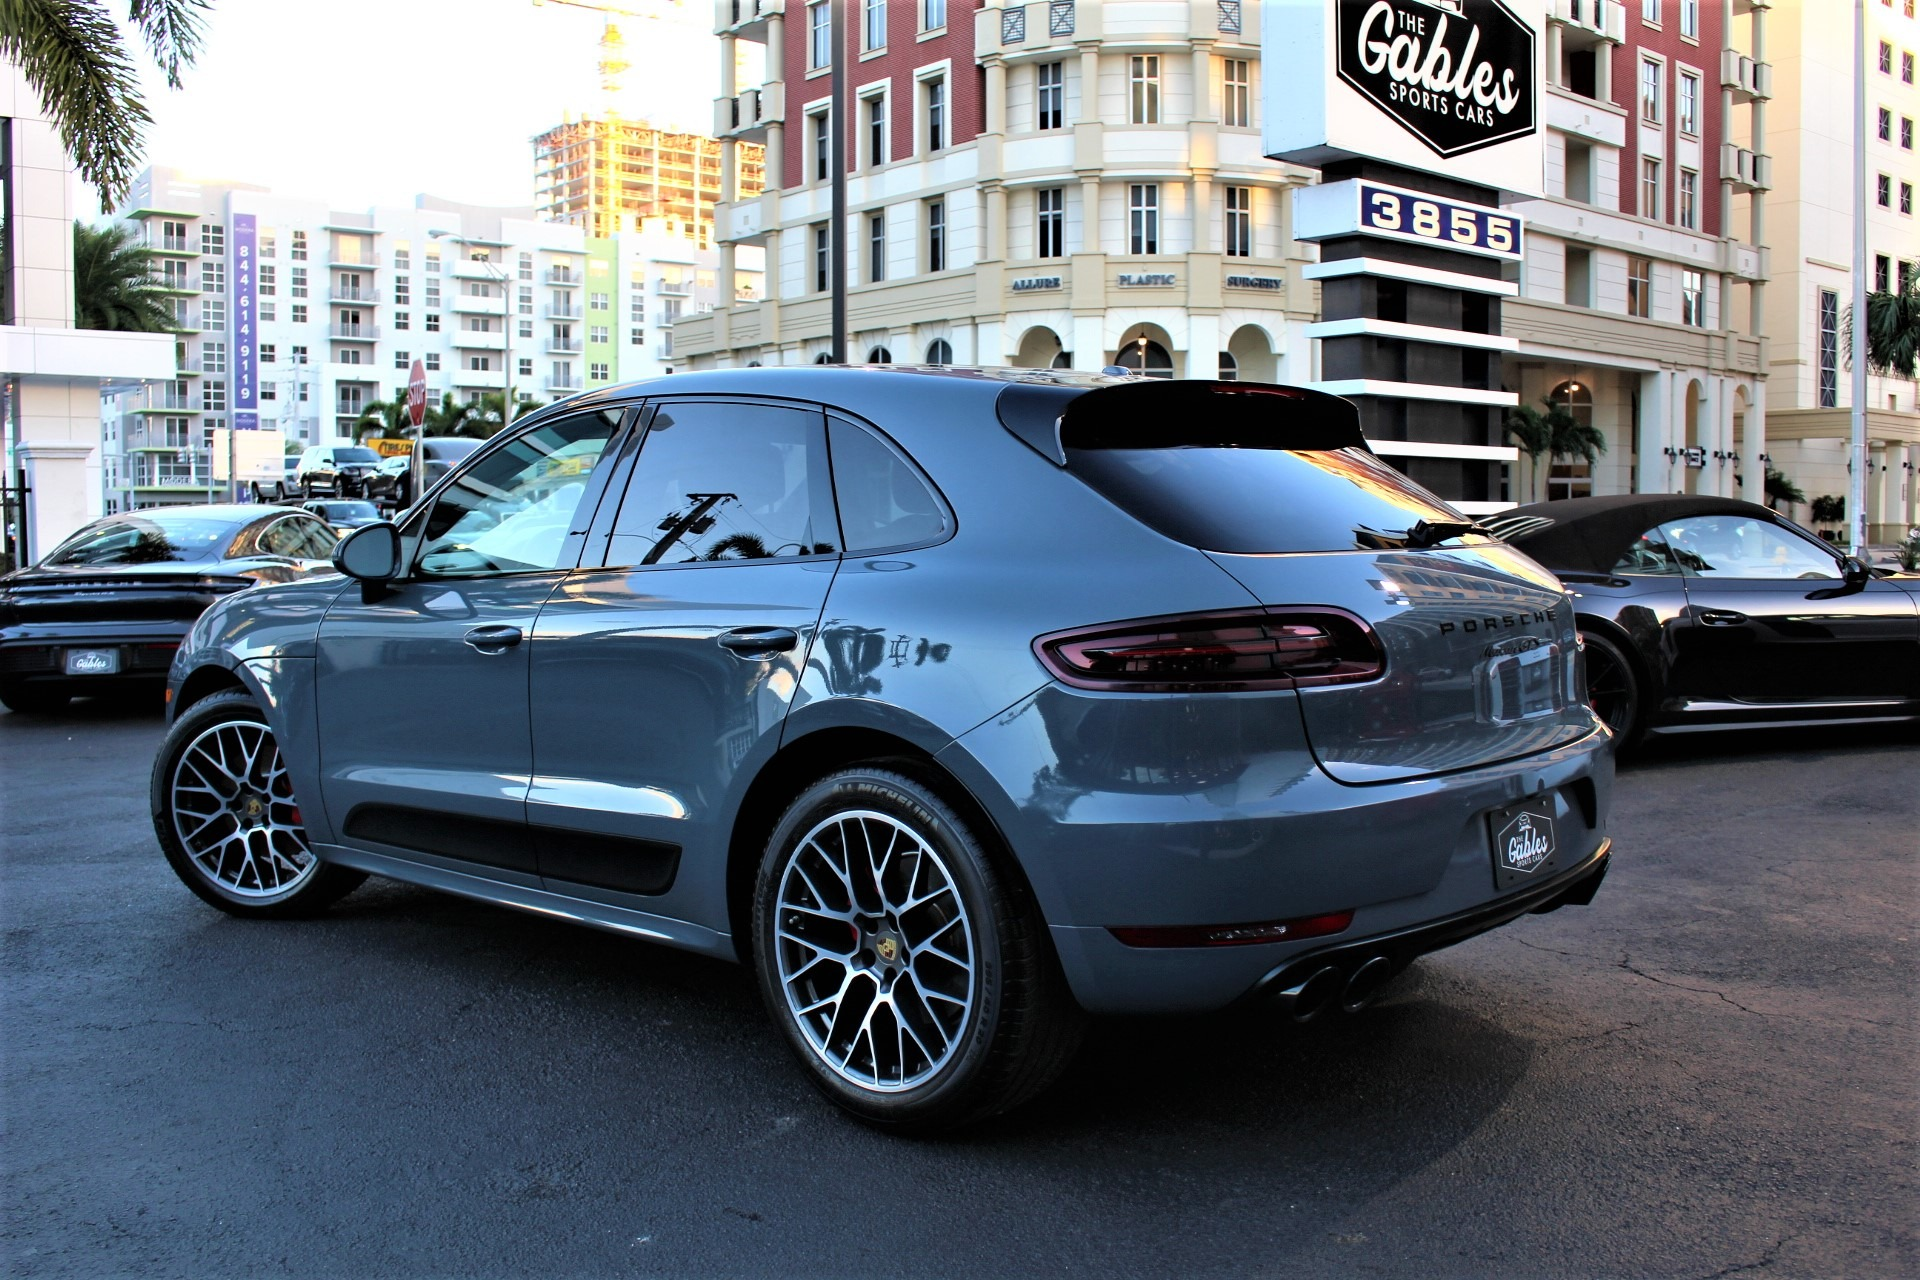 Used 2018 Porsche Macan GTS for sale $73,850 at The Gables Sports Cars in Miami FL 33146 3